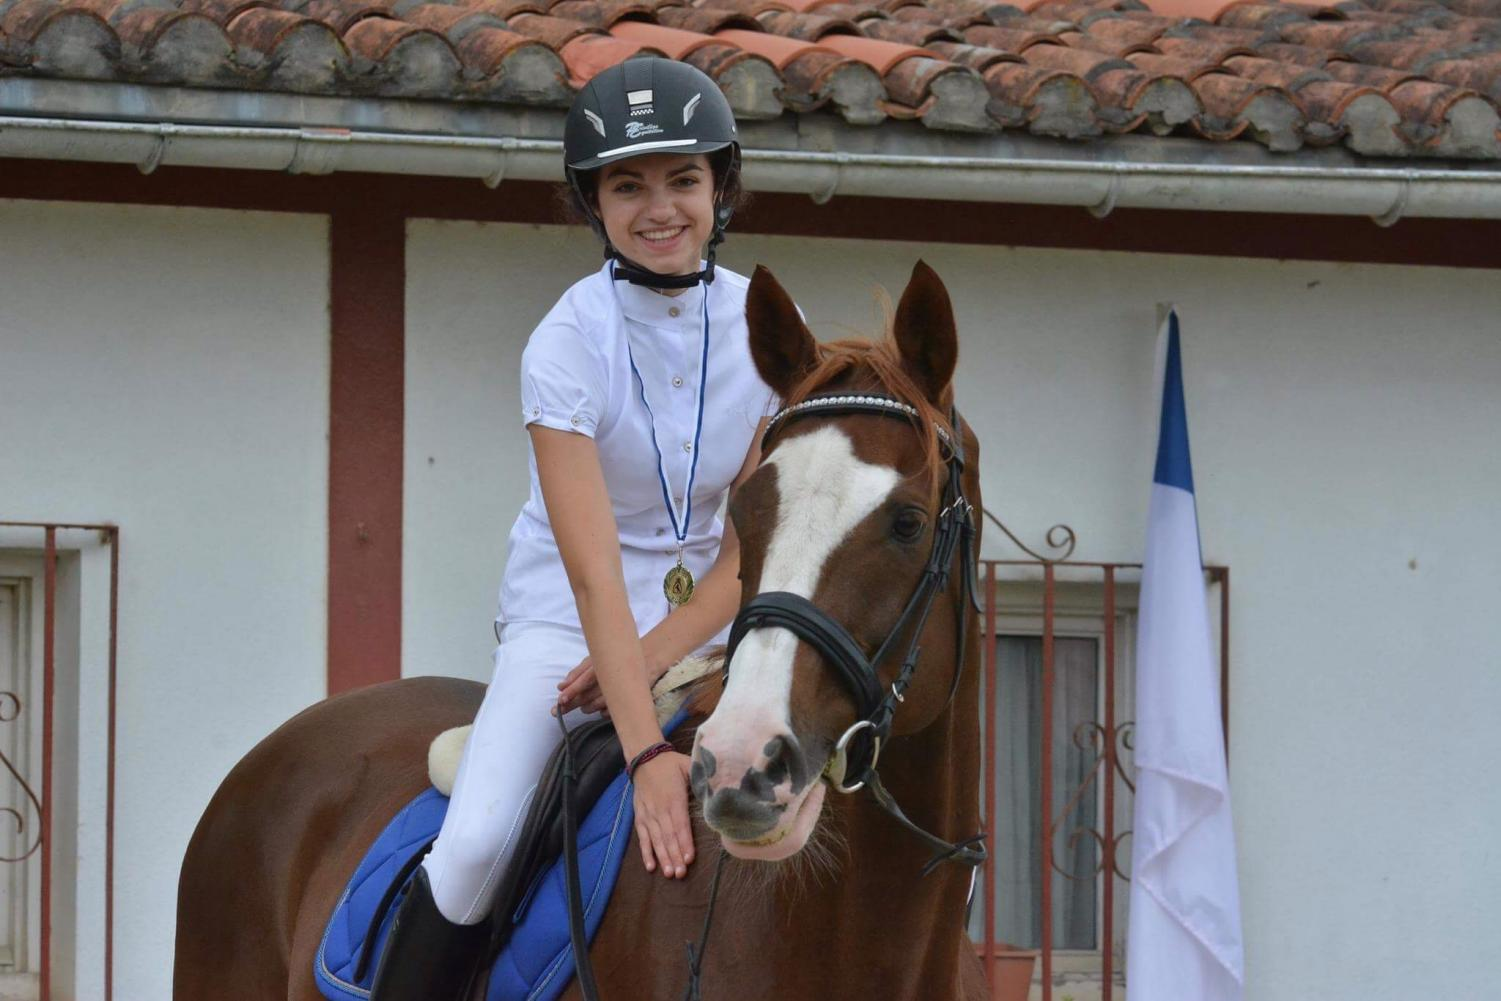 Justine and her favorite horse after winning 2nd place during a jump show.